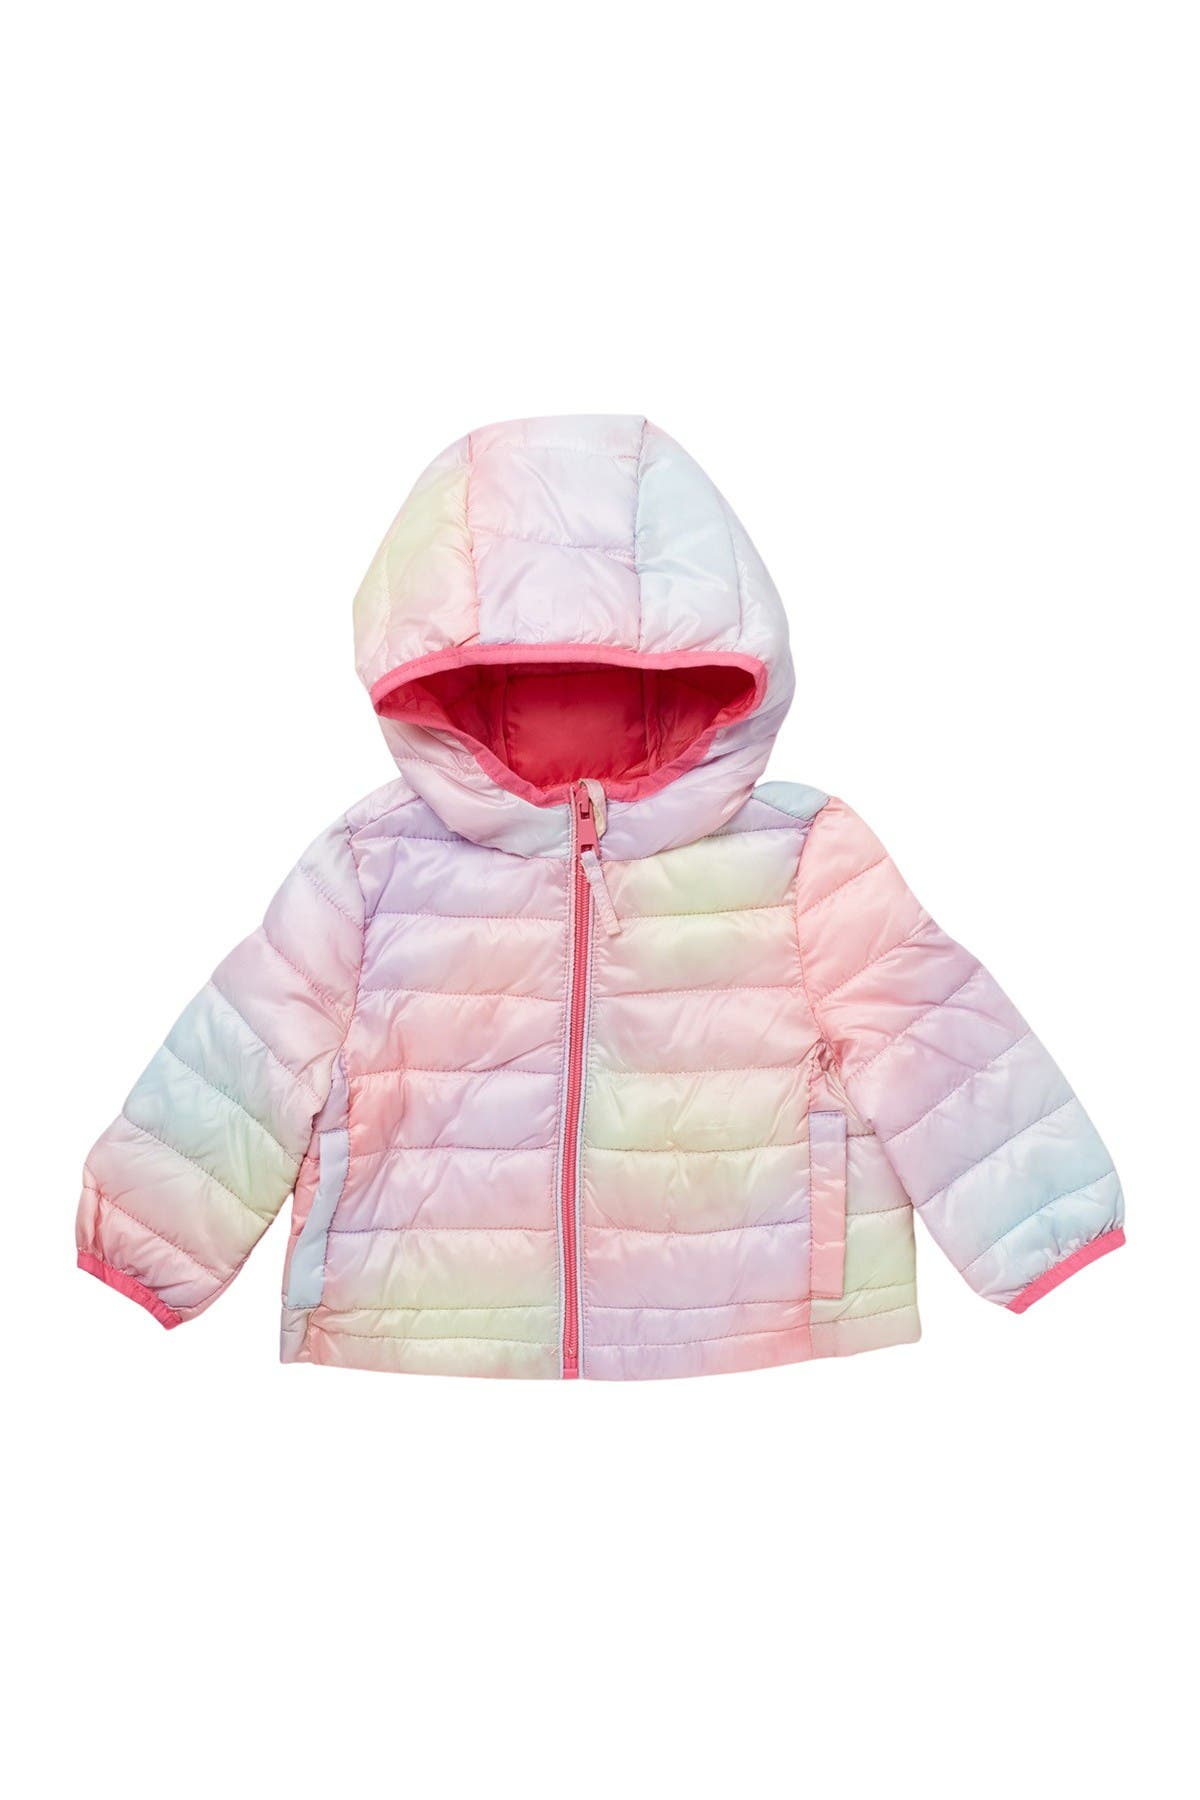 Image of Urban Republic Packable Quilted Zip Jacket